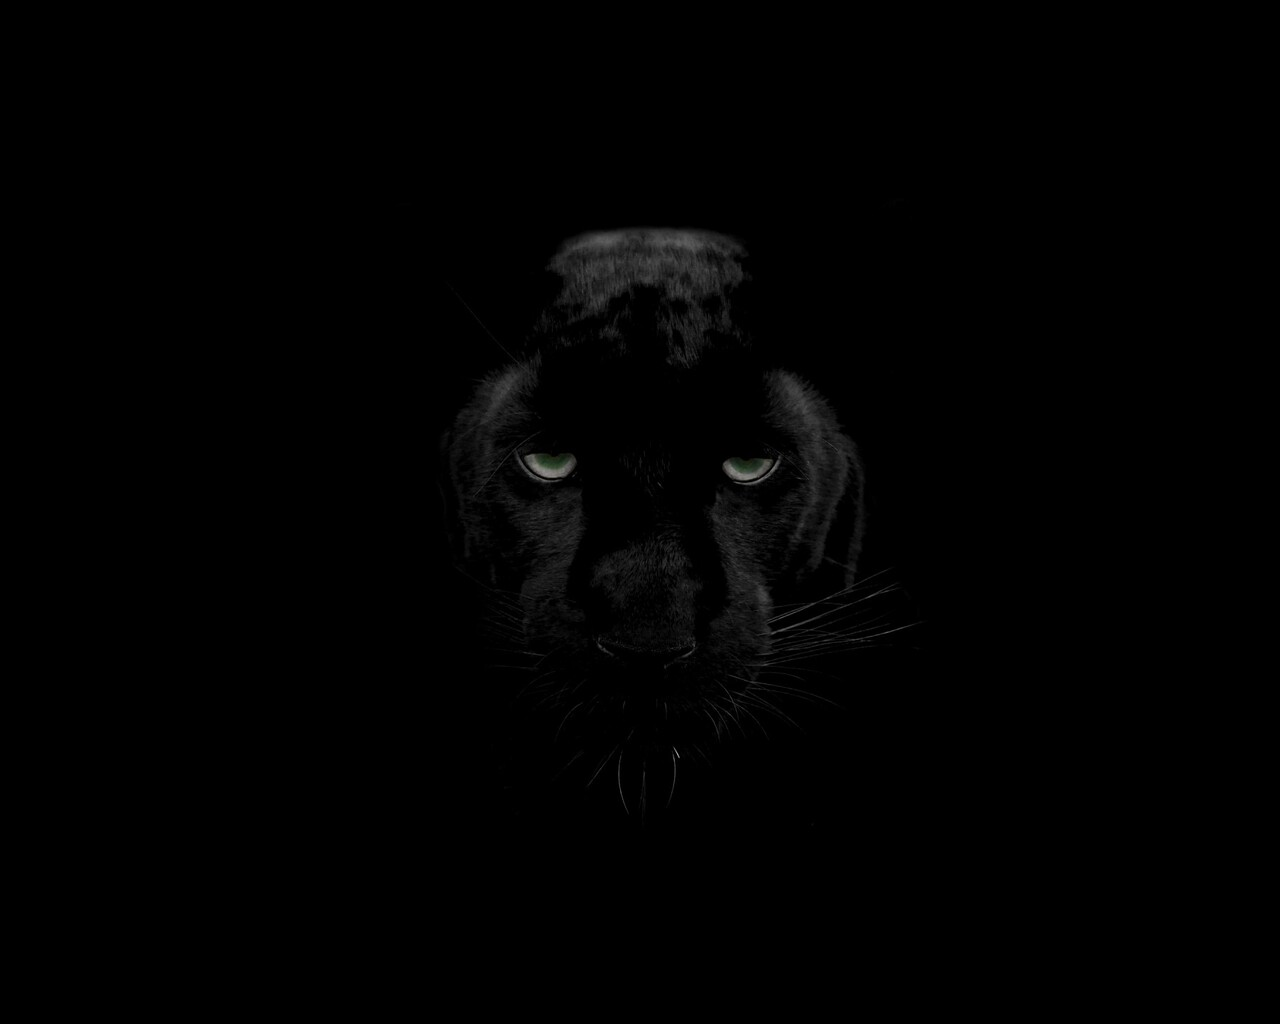 1280x1024 Green Eyes Black Panther 1280x1024 Resolution Hd 4k Wallpapers Images Backgrounds Photos And Pictures